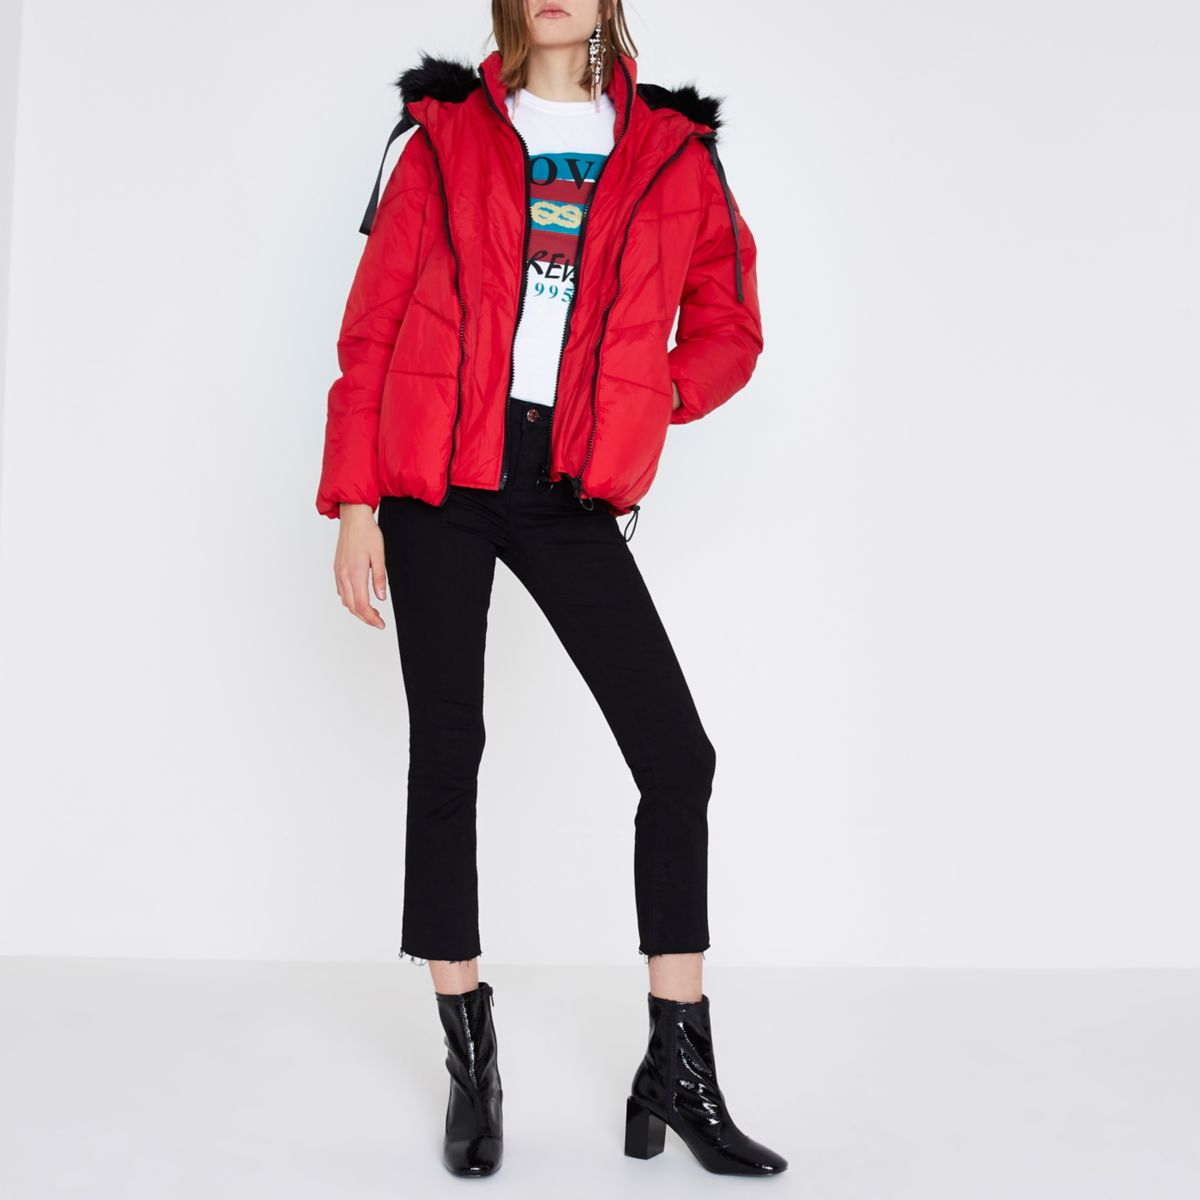 Flannel Motorcycle Jacket >> Red Jackets And Coats | Han Coats